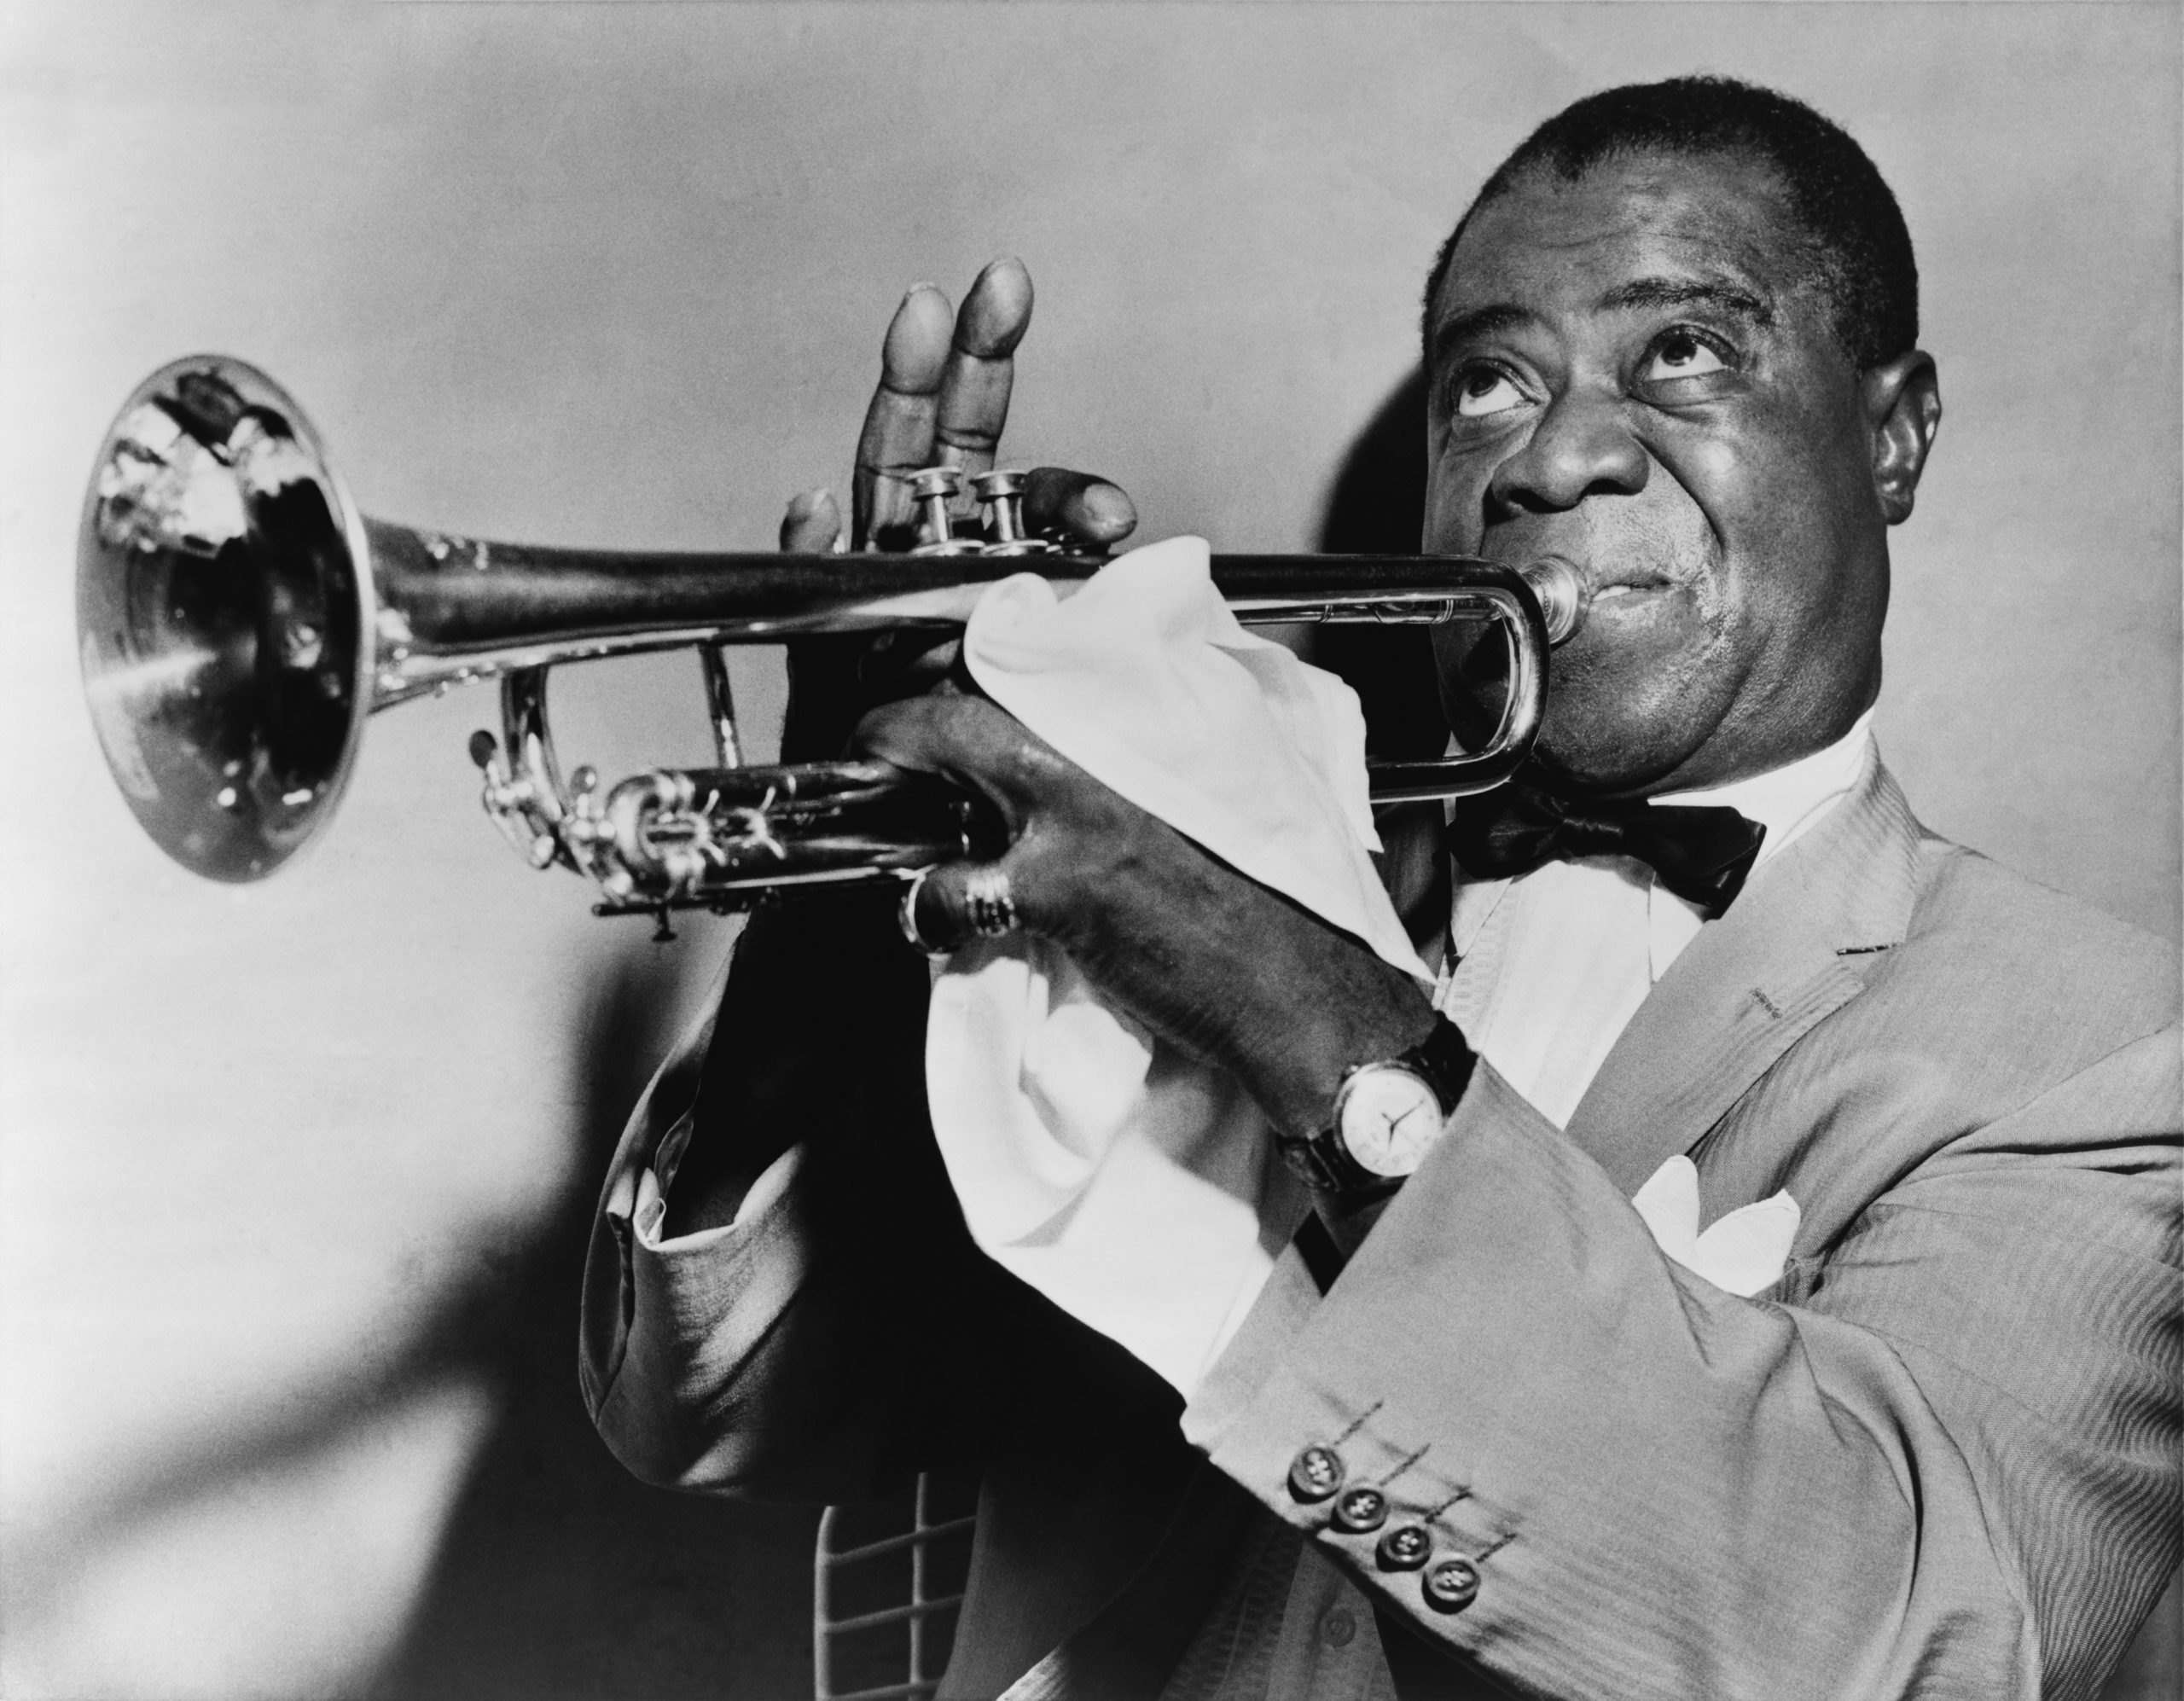 Louis_Armstrong // Public Domain, Library of Congress